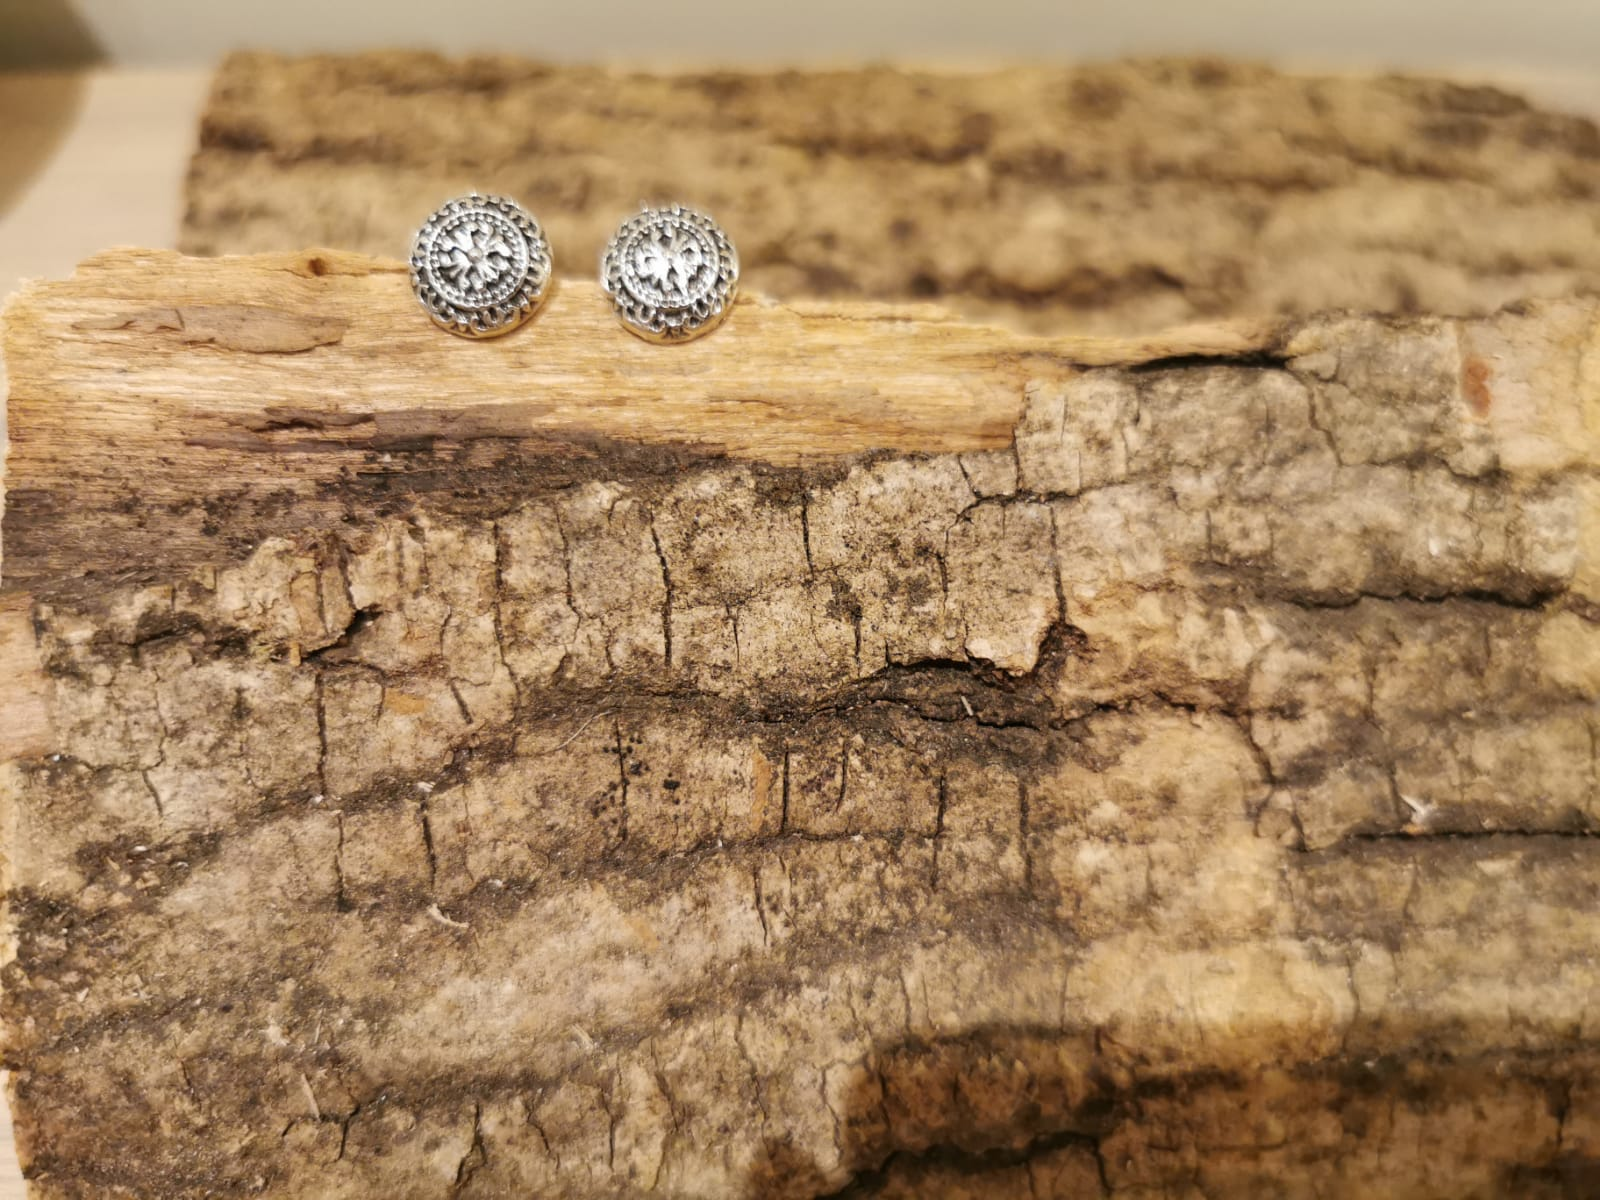 Outdoor Inspired Stud Earring Set